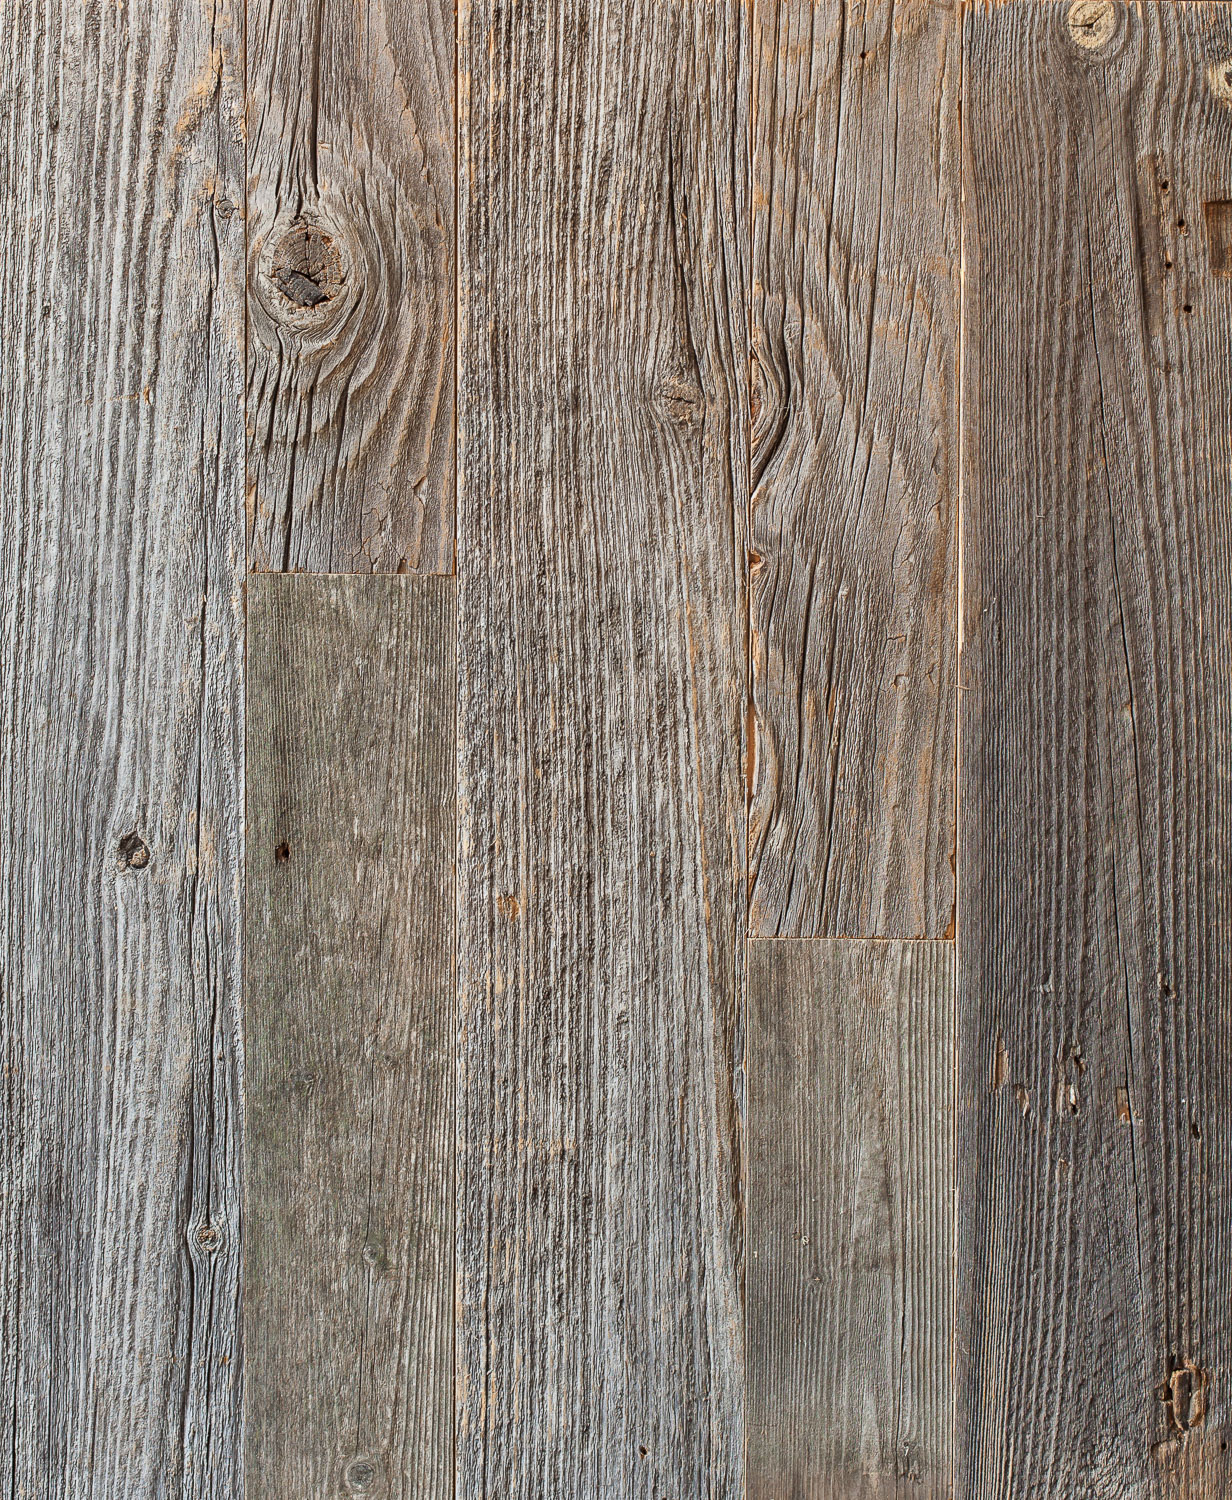 Pine Cladding: About: Reclaimed Pine Wall Cladding